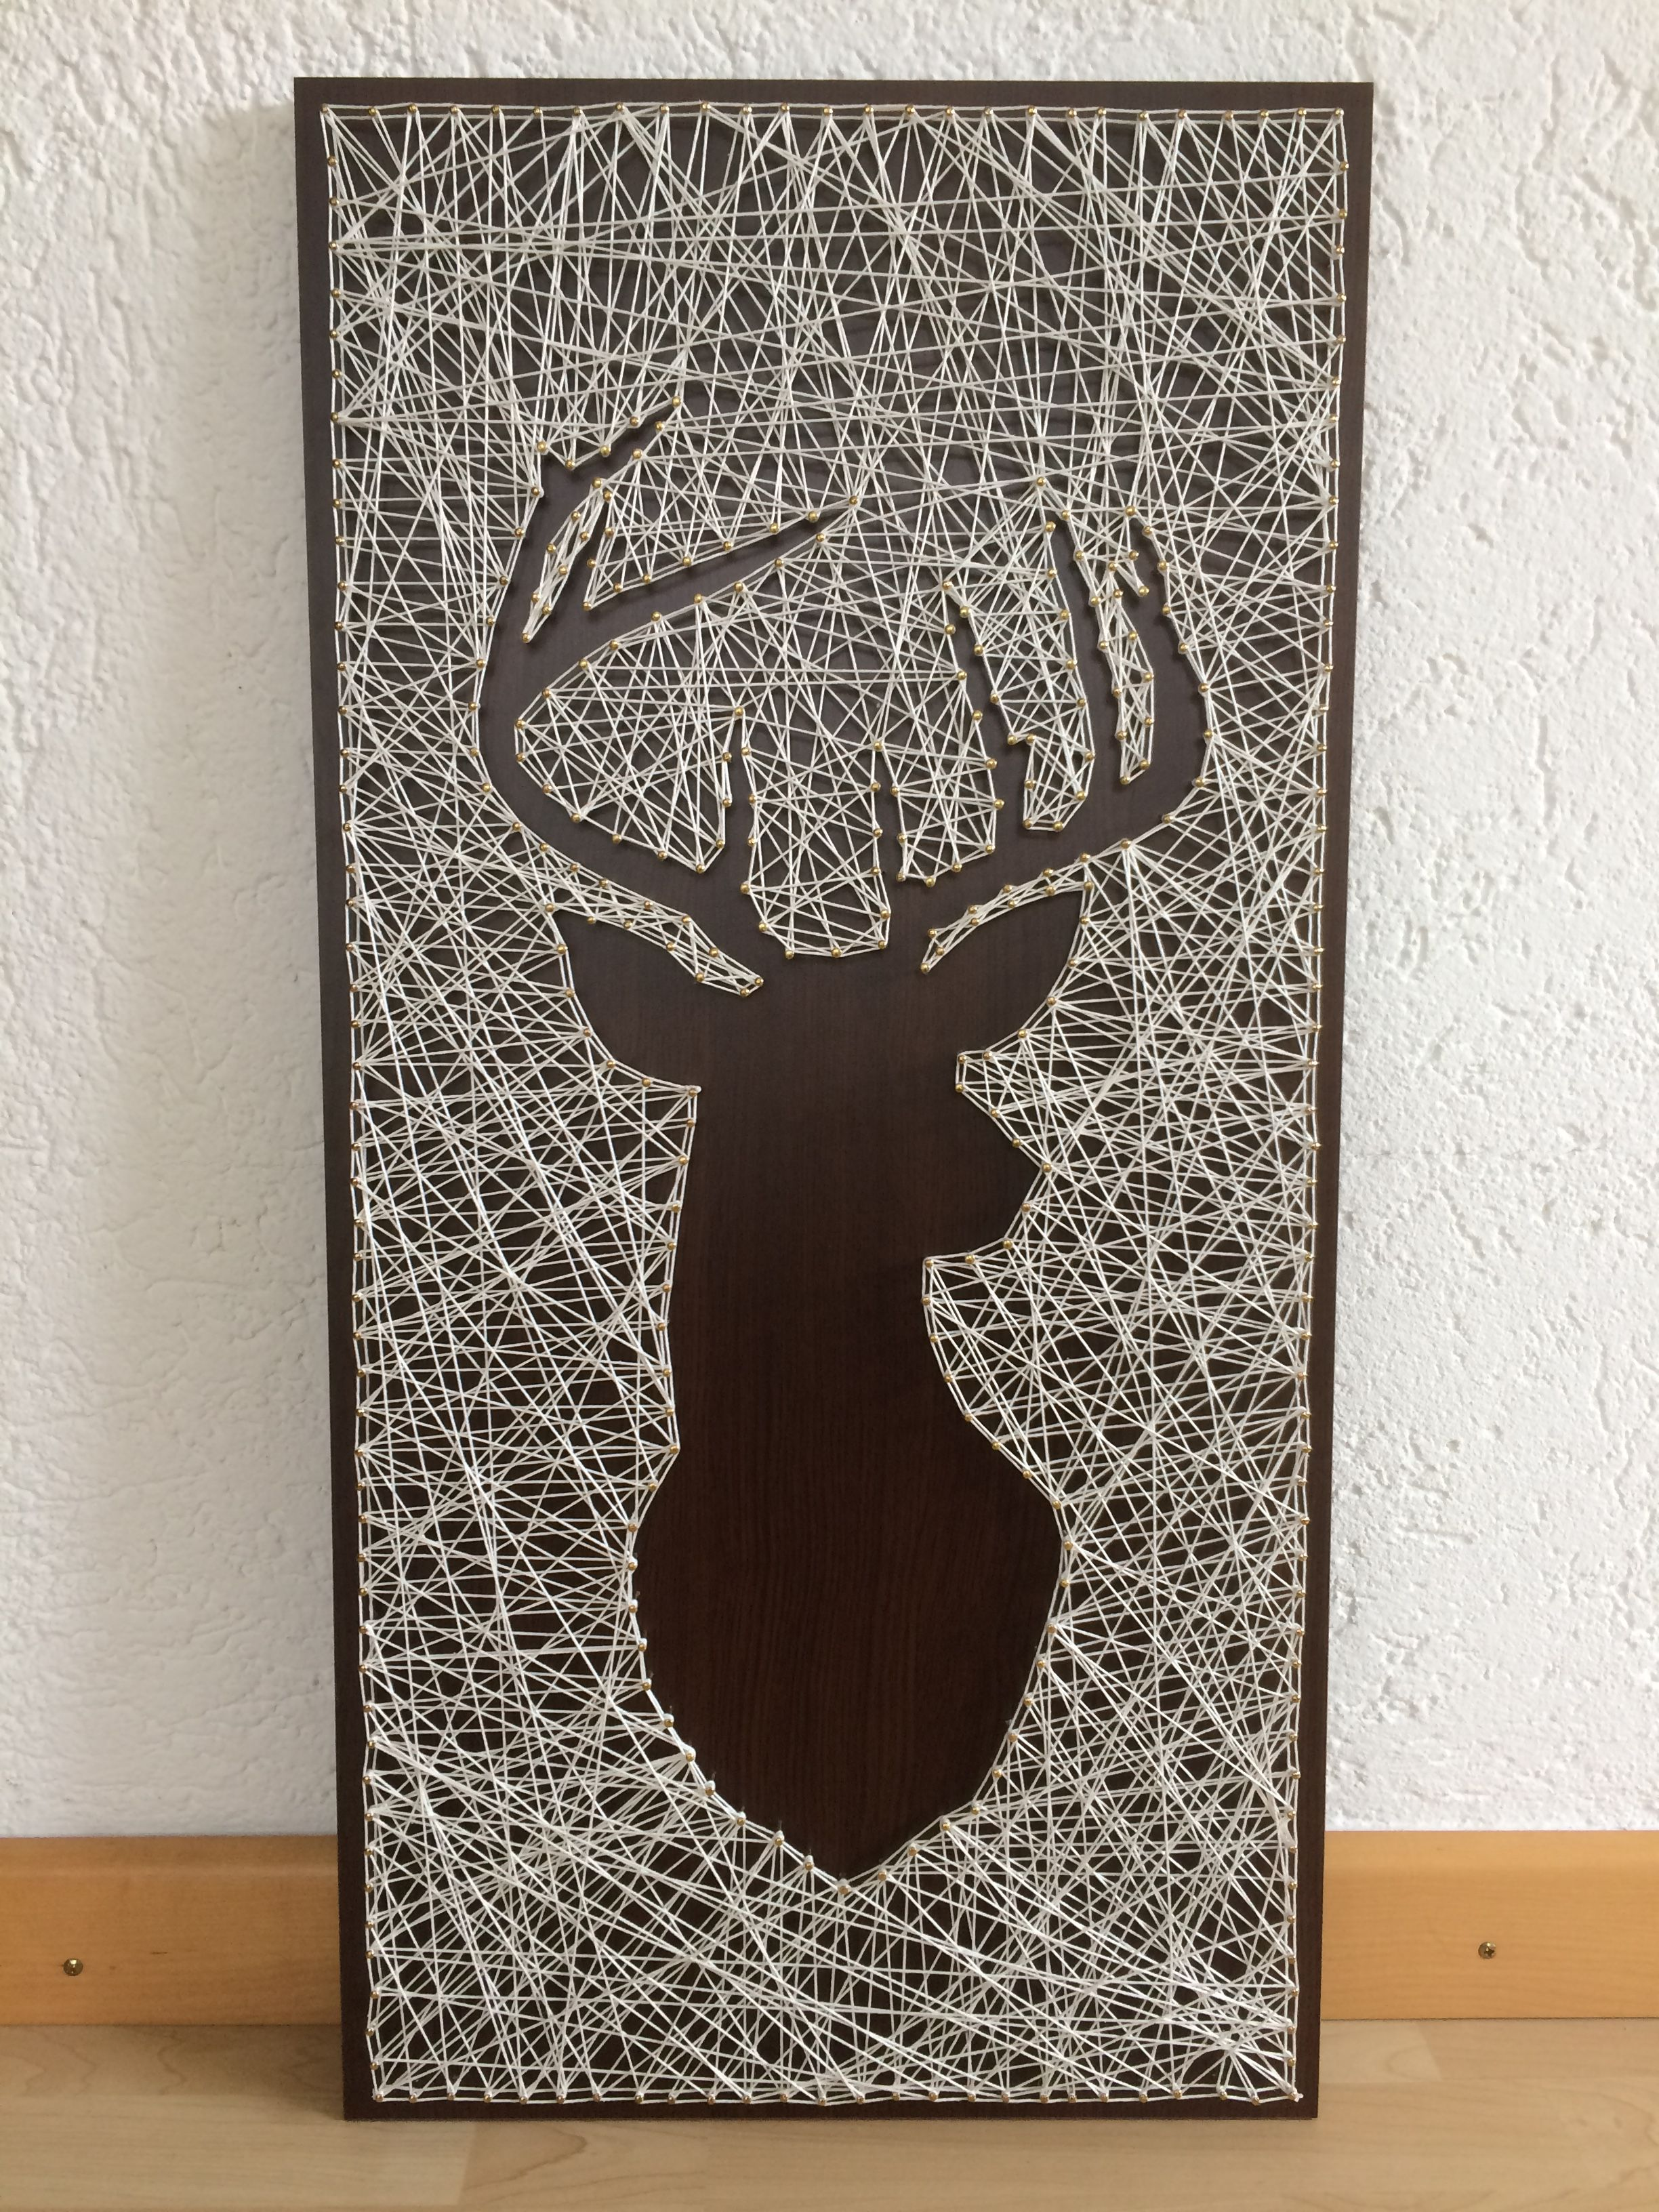 diy string art deer head bonnes id es pinterest. Black Bedroom Furniture Sets. Home Design Ideas